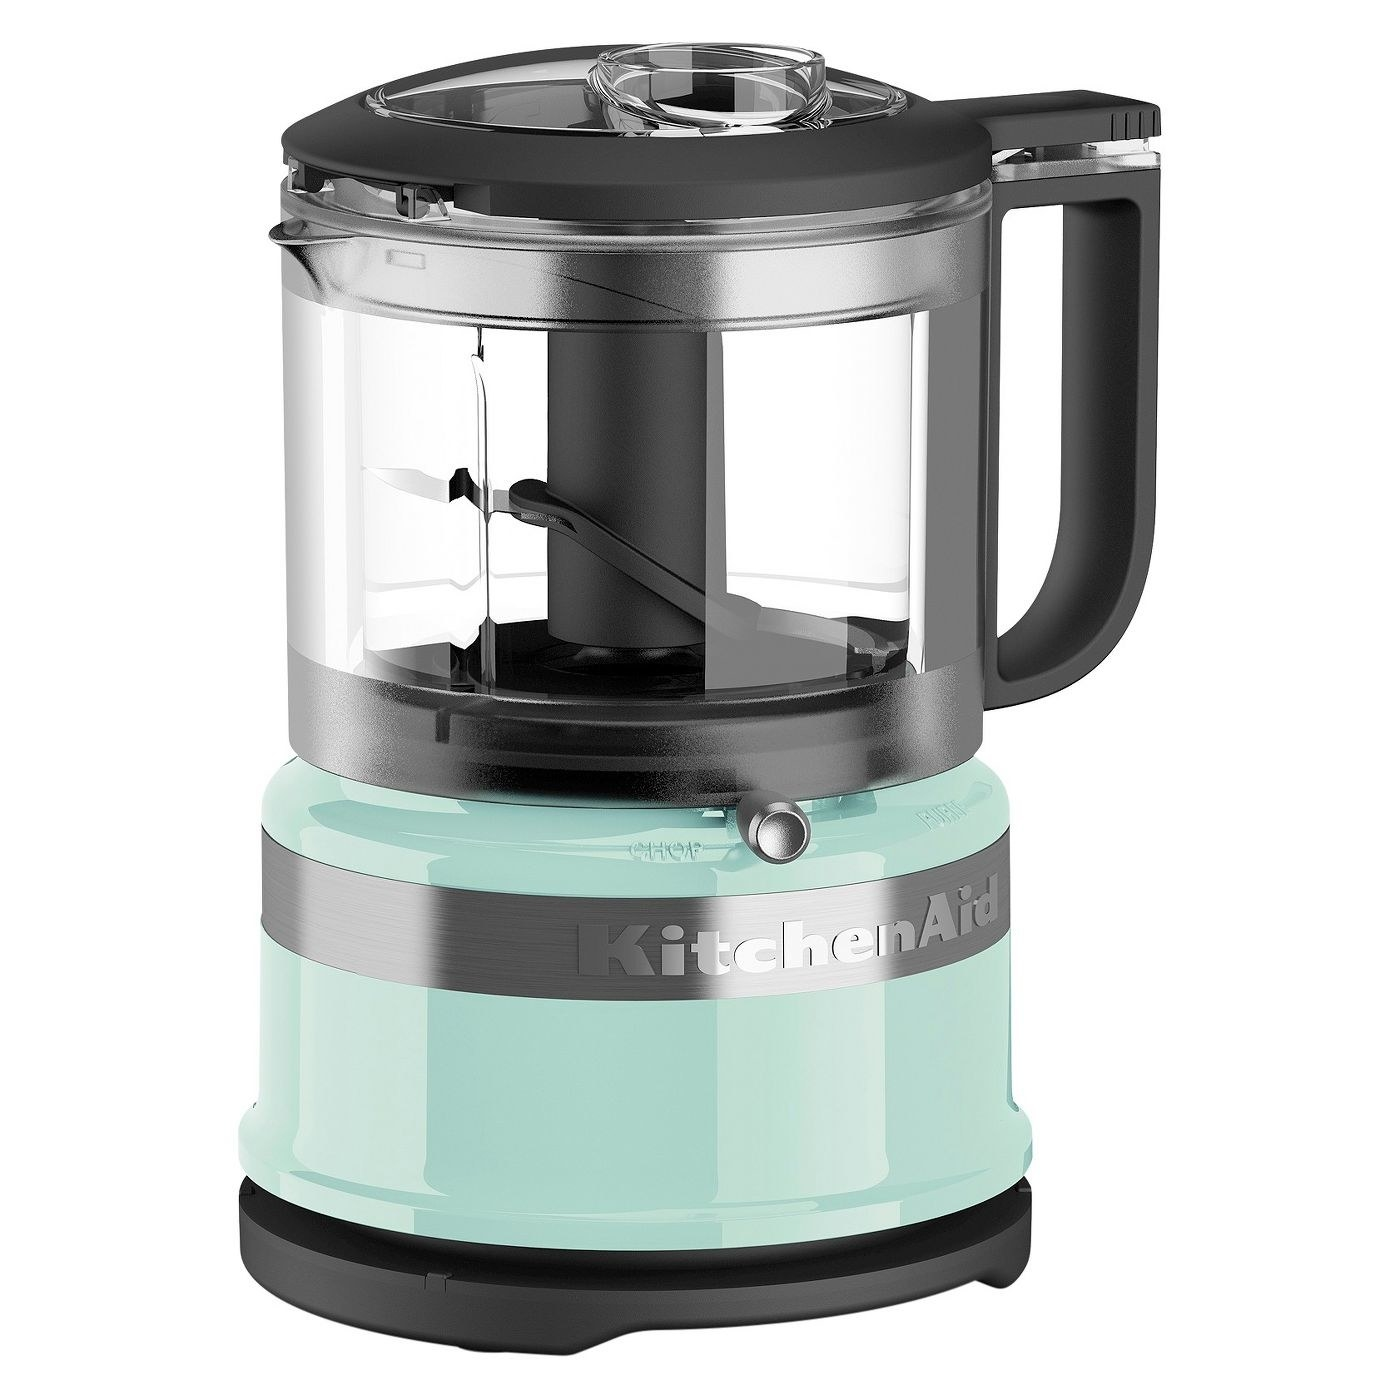 The ice blue food chopper